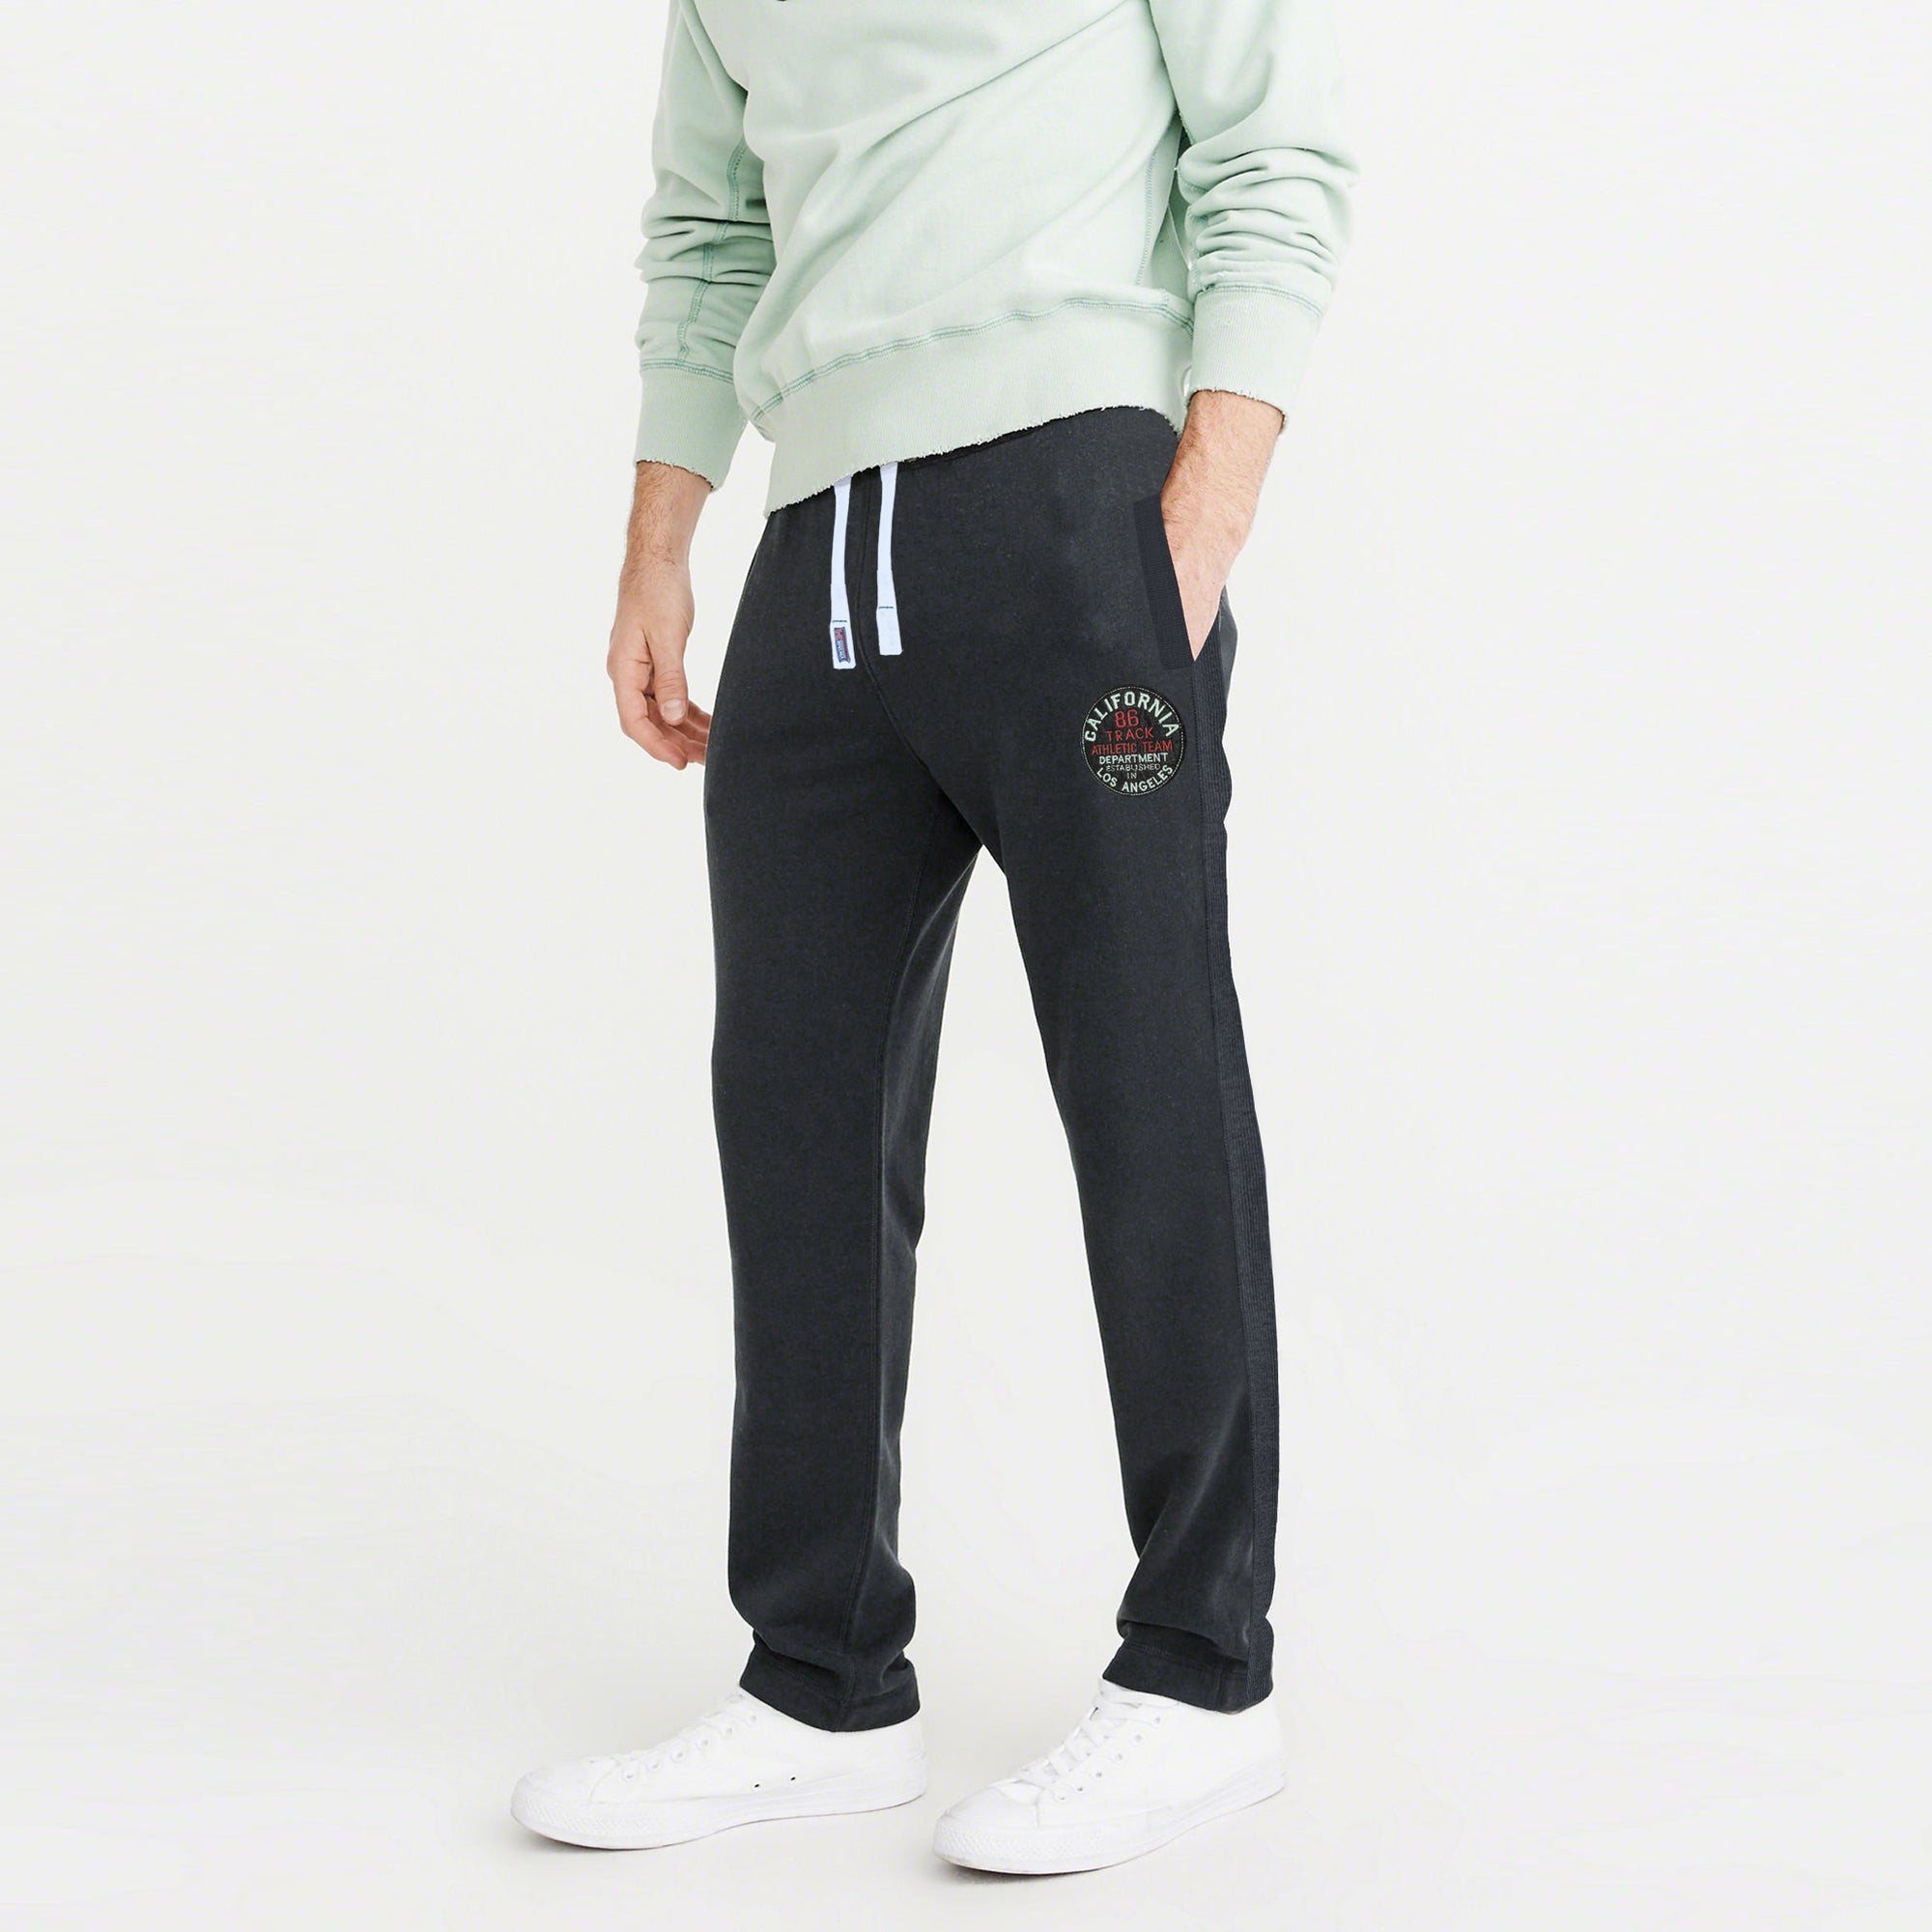 Next Regular Fit Fleece Jogger Trouser For Men-Charcoal Melange-BE7475